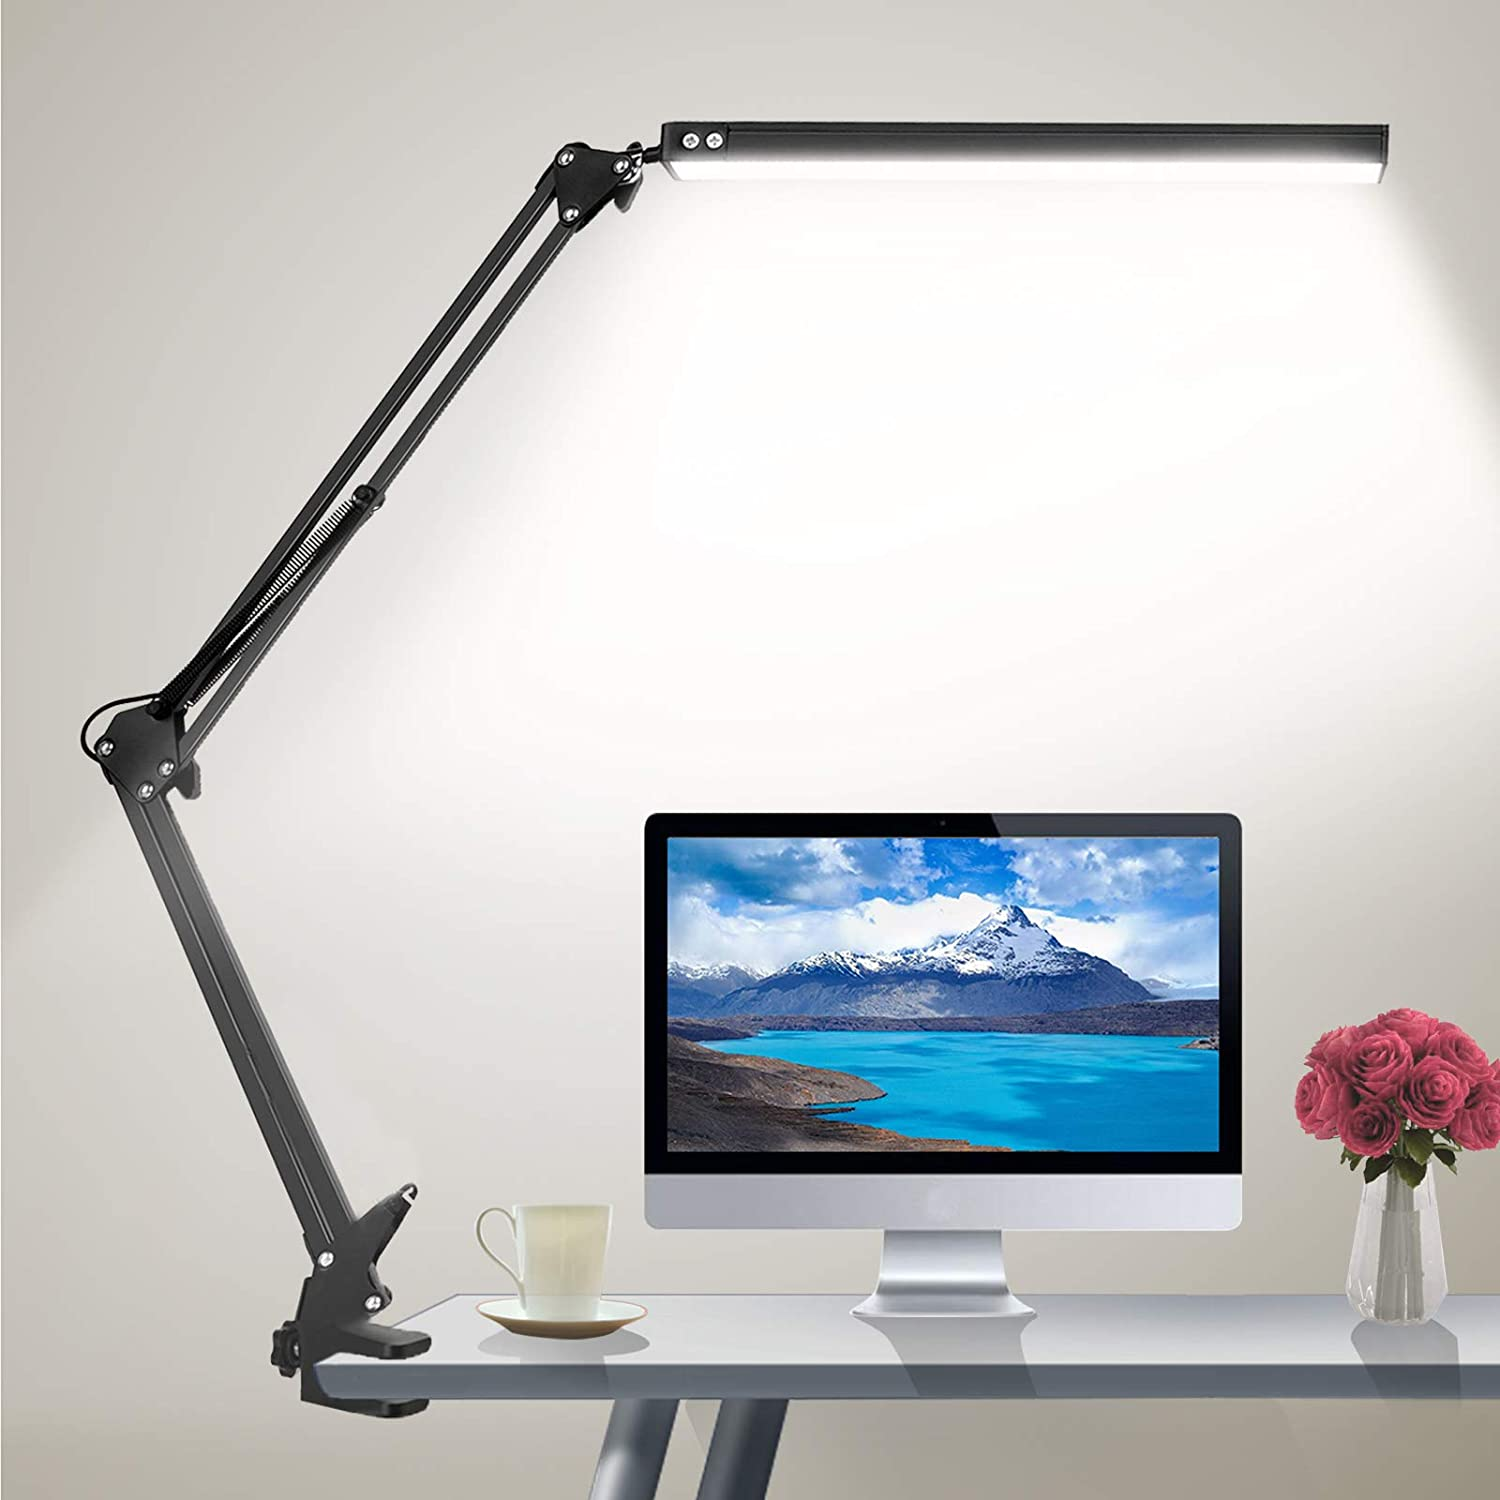 HaFundy LED Desk Lamp,Adjustable Eye-Caring Desk Light with Clamp,Swing Arm Lamp Includes 3 Color Modes,10 Brightness Levels Table Lamps with Memory Function,Desk Lamps for Home,Office,Reading(Black)